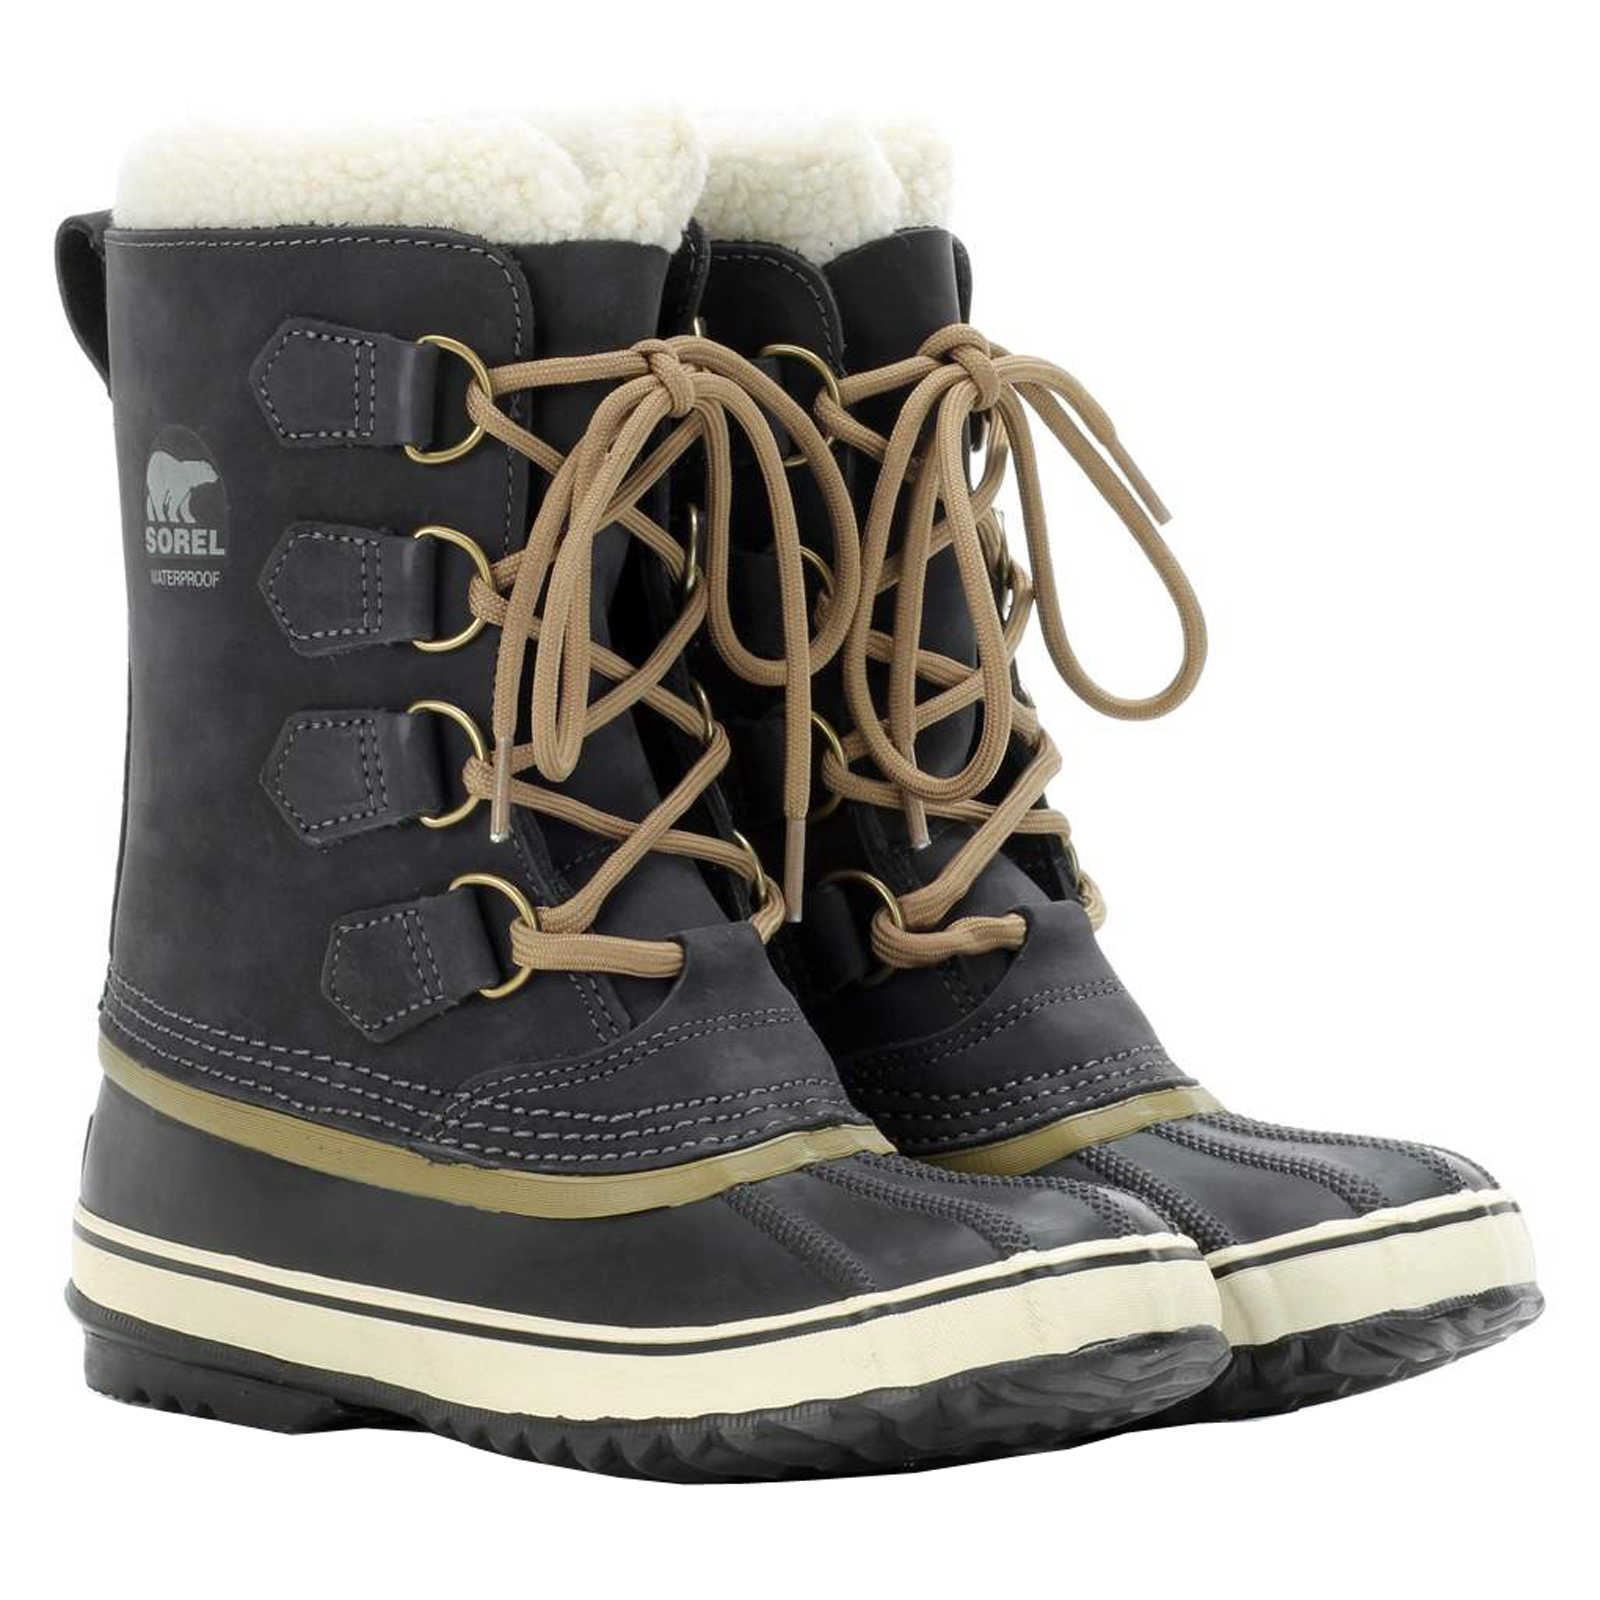 Lastest Sorel  1964 Premium LTR Boot  Outdoor Gear Exchange